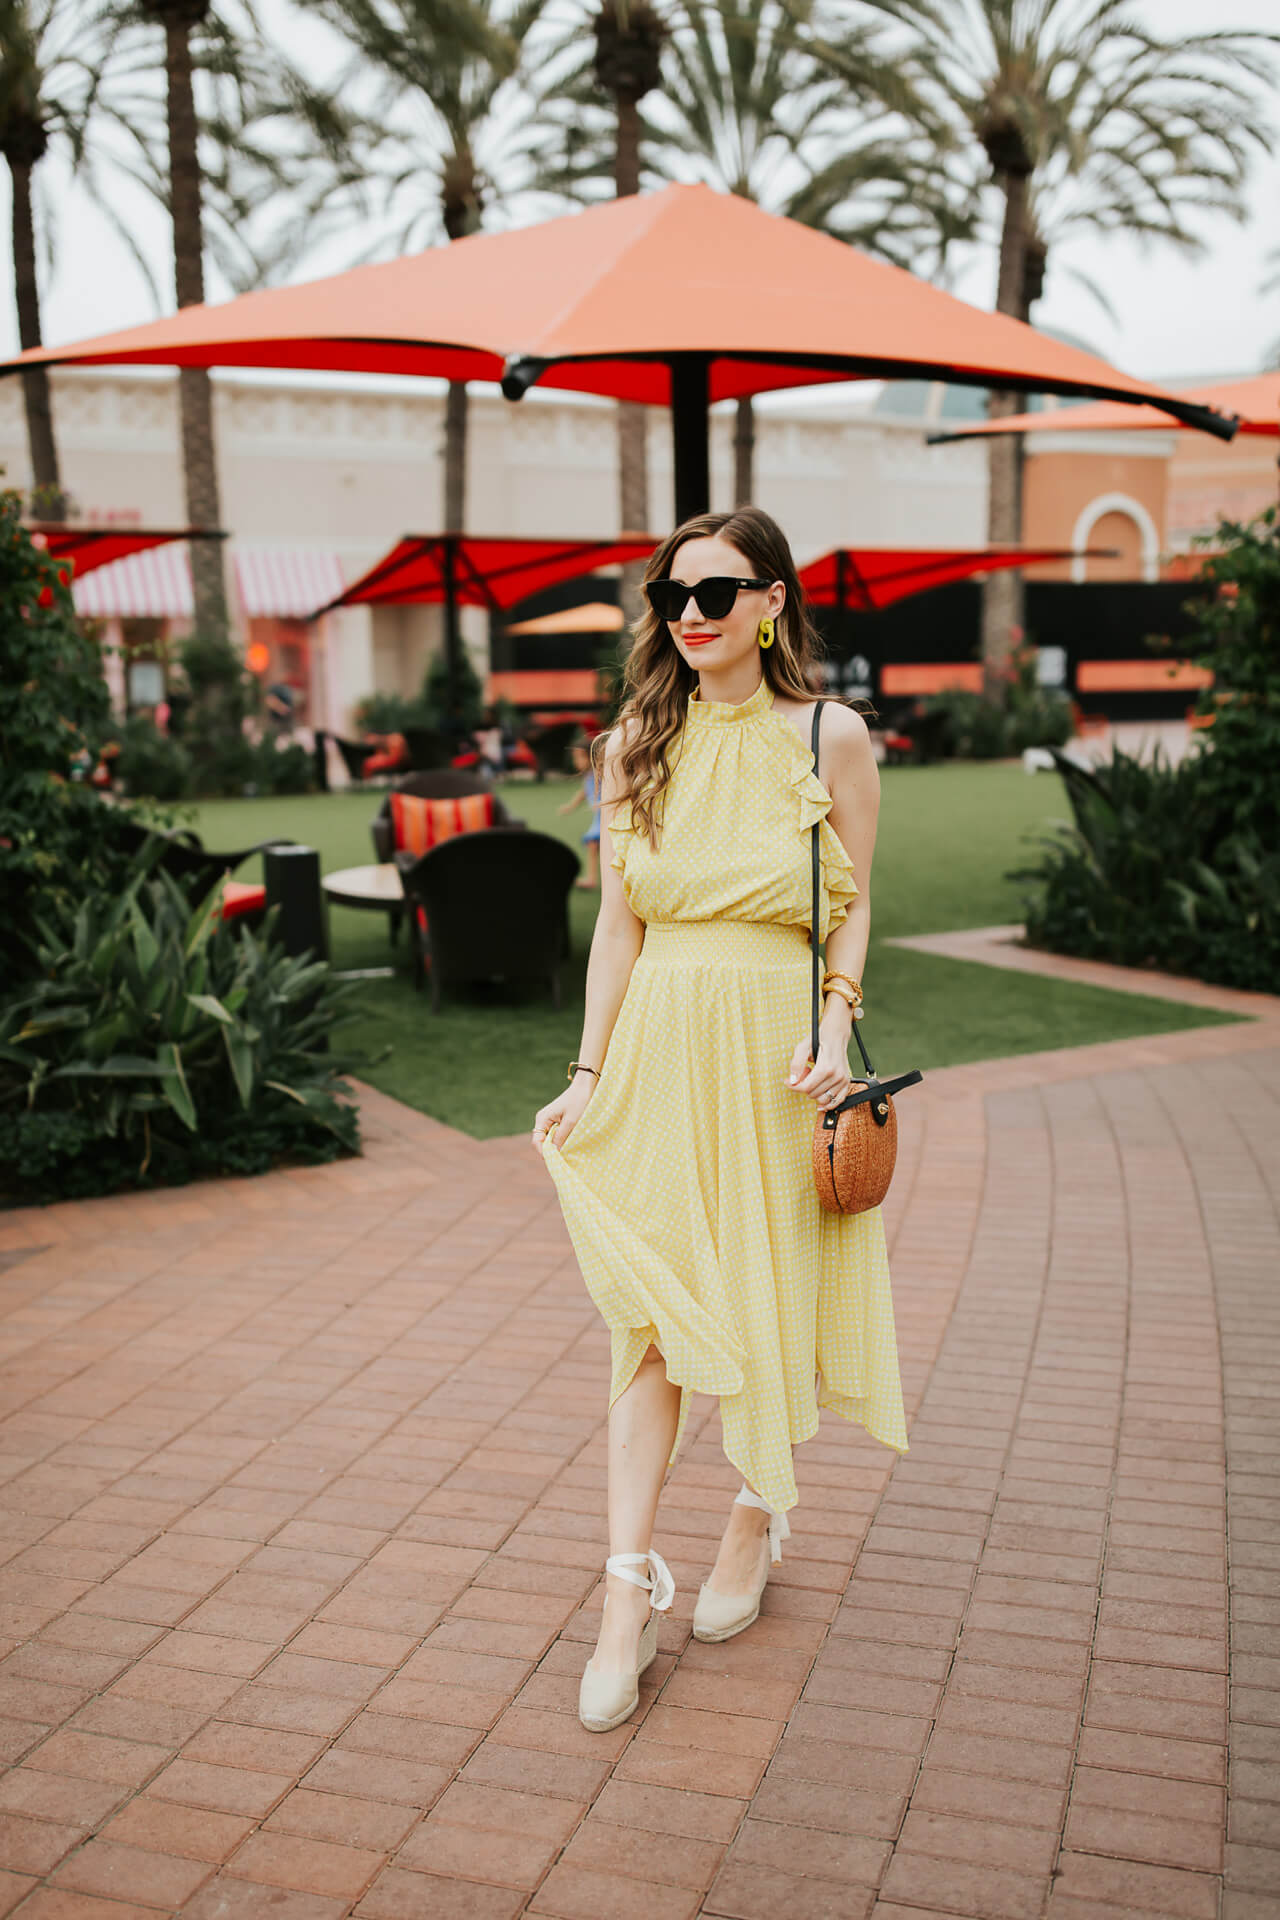 outfit inspiration for summer with a yellow halter dress - M Loves M @marmar